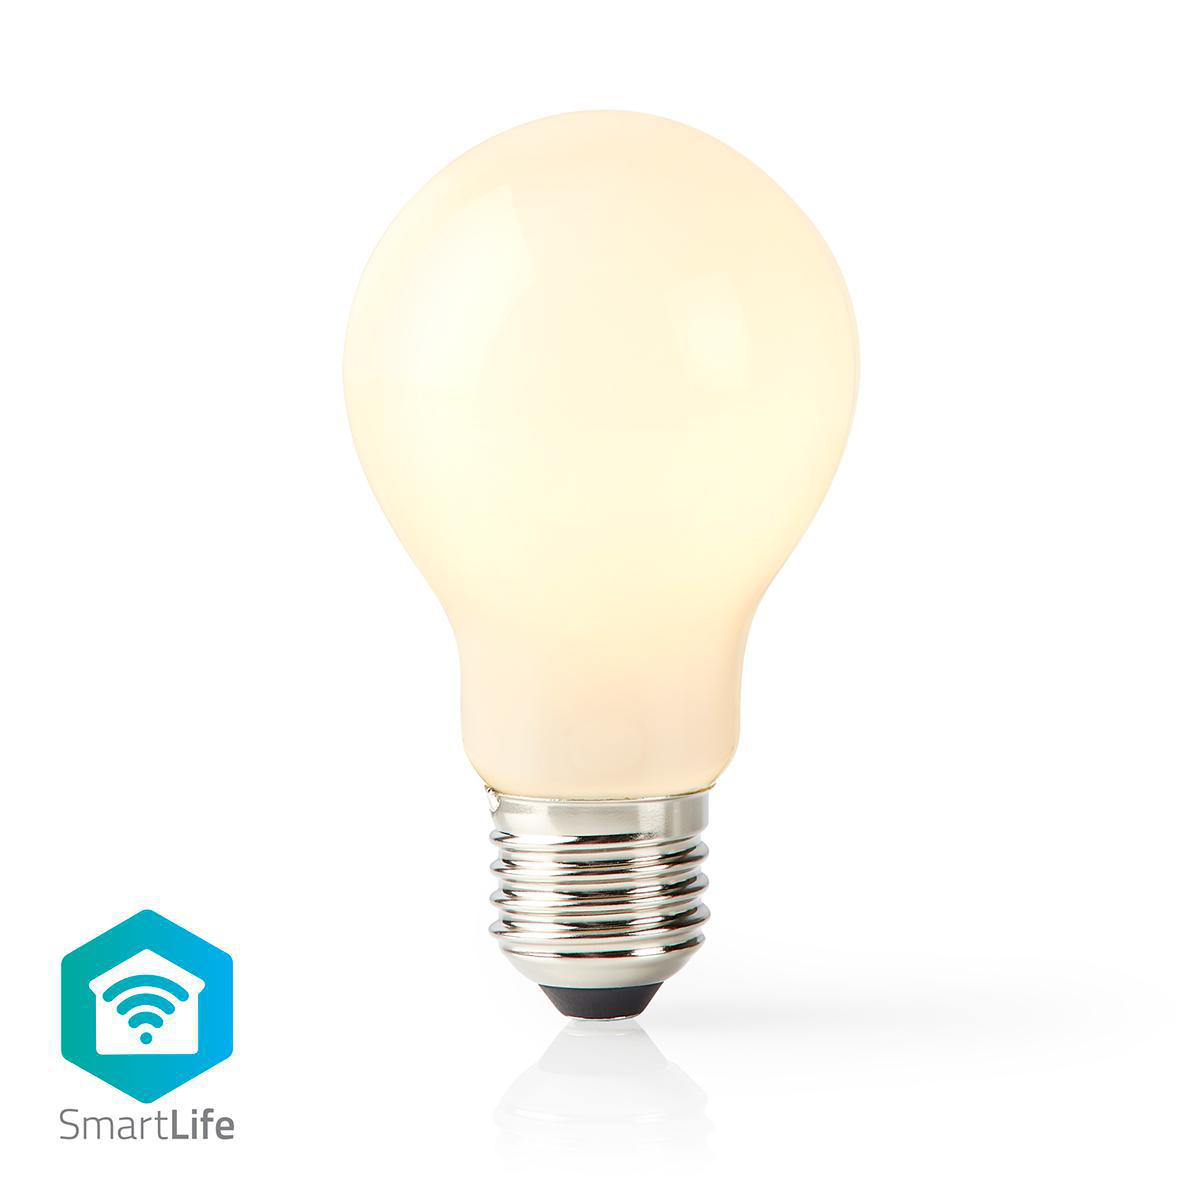 Slimme Led Lamp met wifi E27 fitting 2700K - warm wit - vooraanzicht lamp